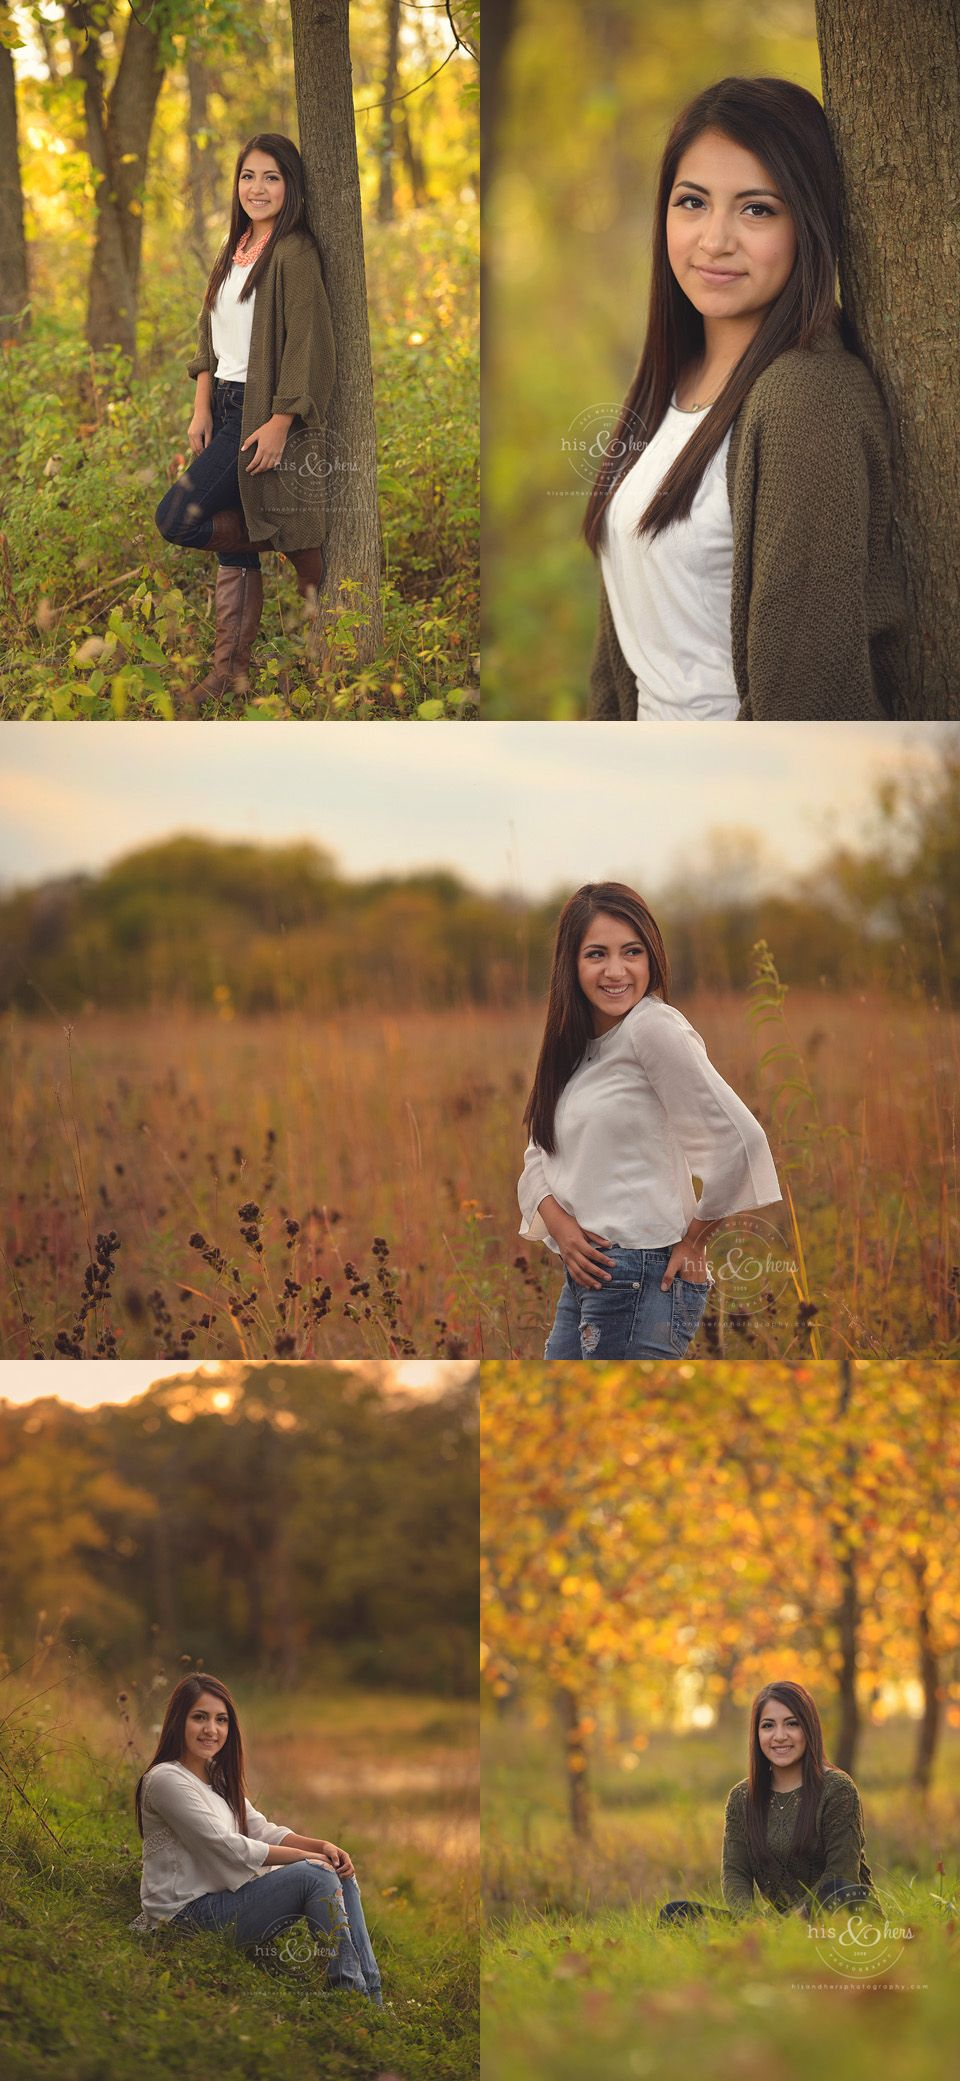 des moines iowa senior pictures photographer senior portraits photography high school yearbook pictures